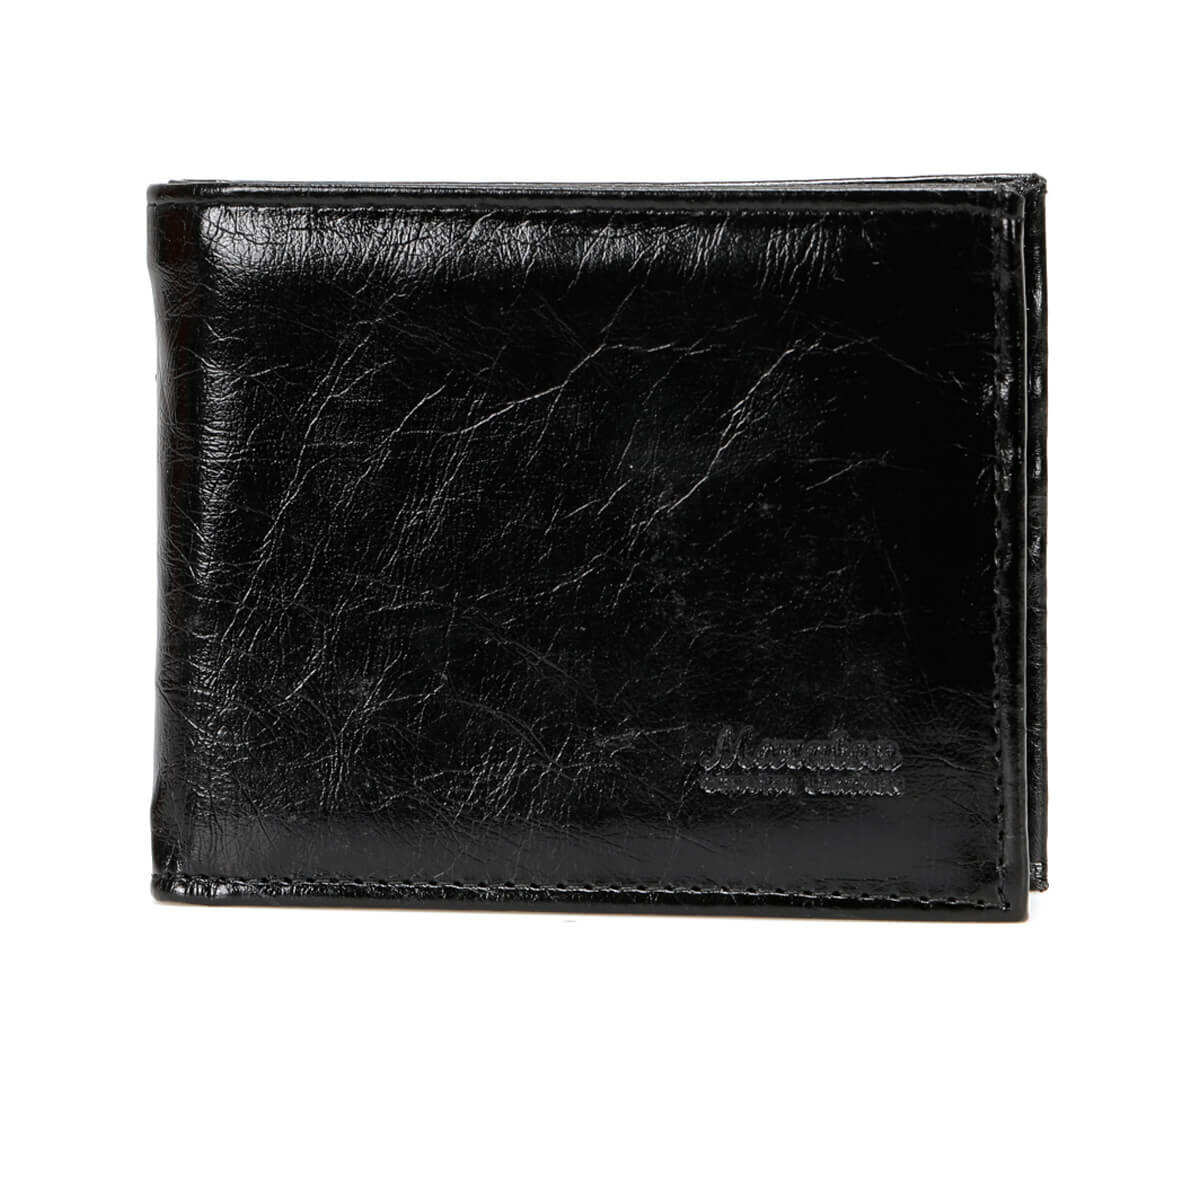 FLO MKNY2204 Black Male Wallet Garamond